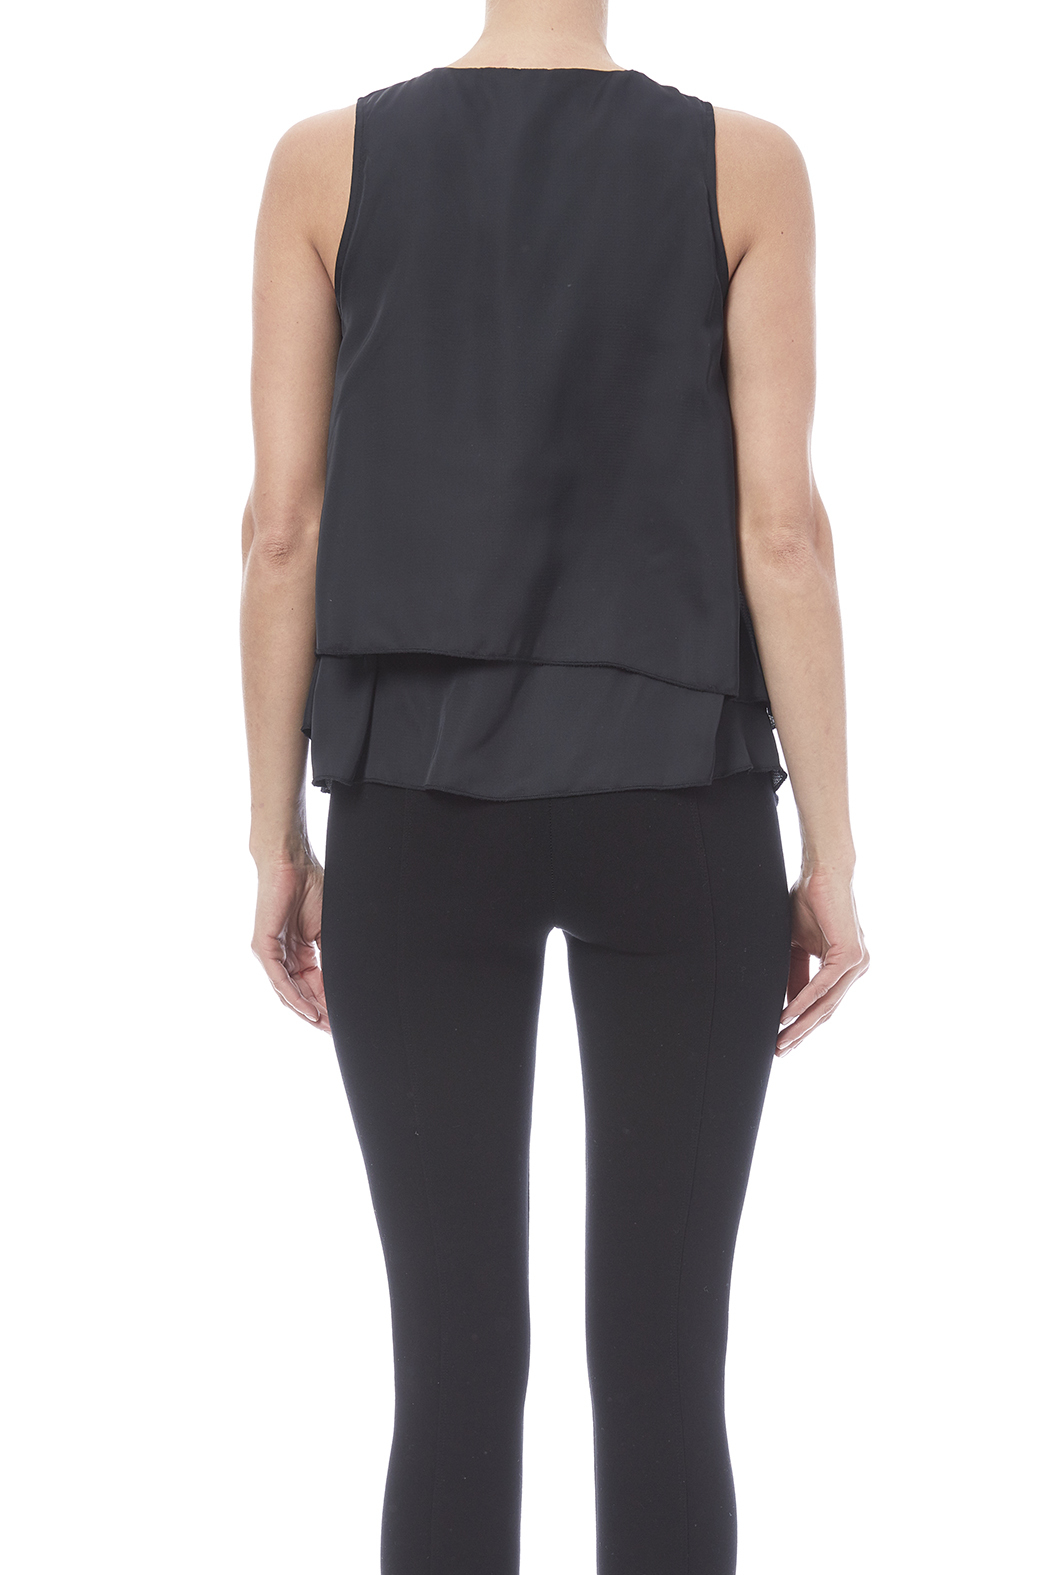 HYFVE Layered Look Blouse - Back Cropped Image